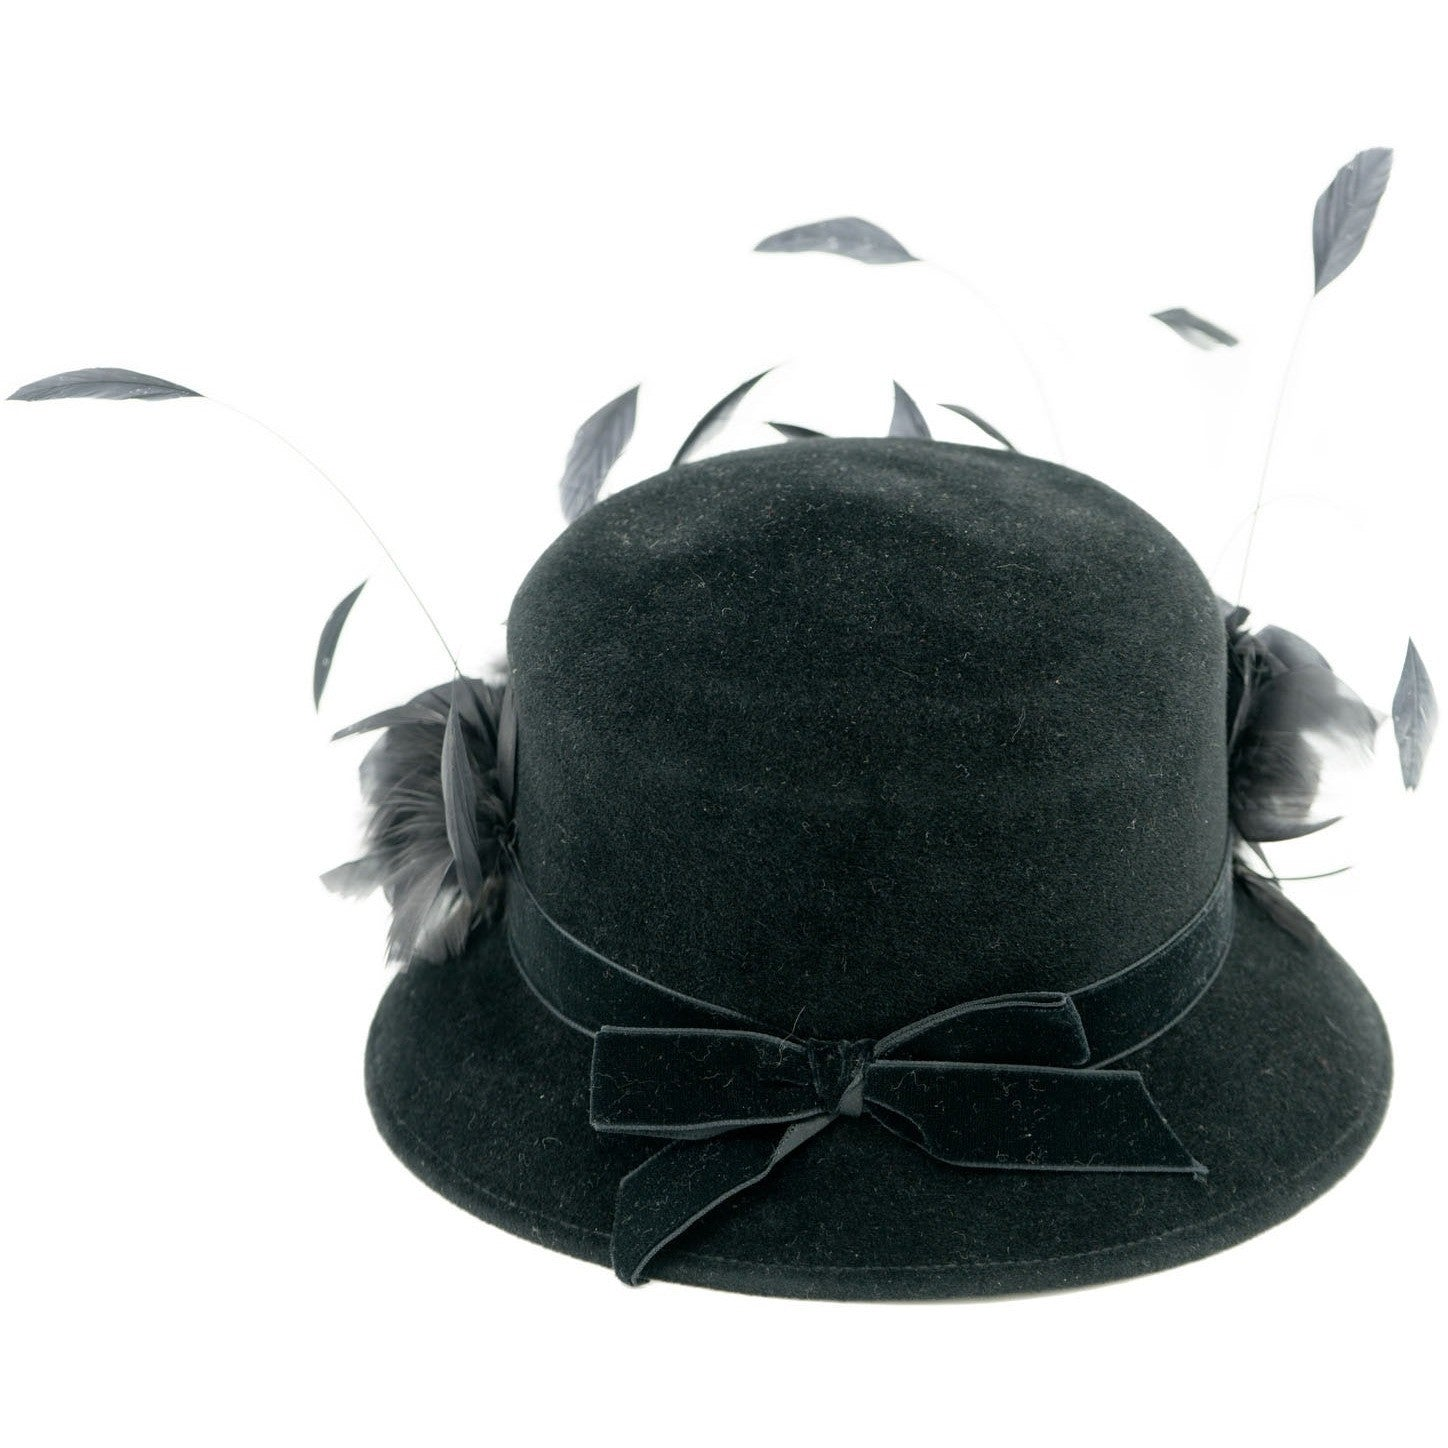 Luca Della Rocca Black Rabbit Hair Cloche Hat with Feathers